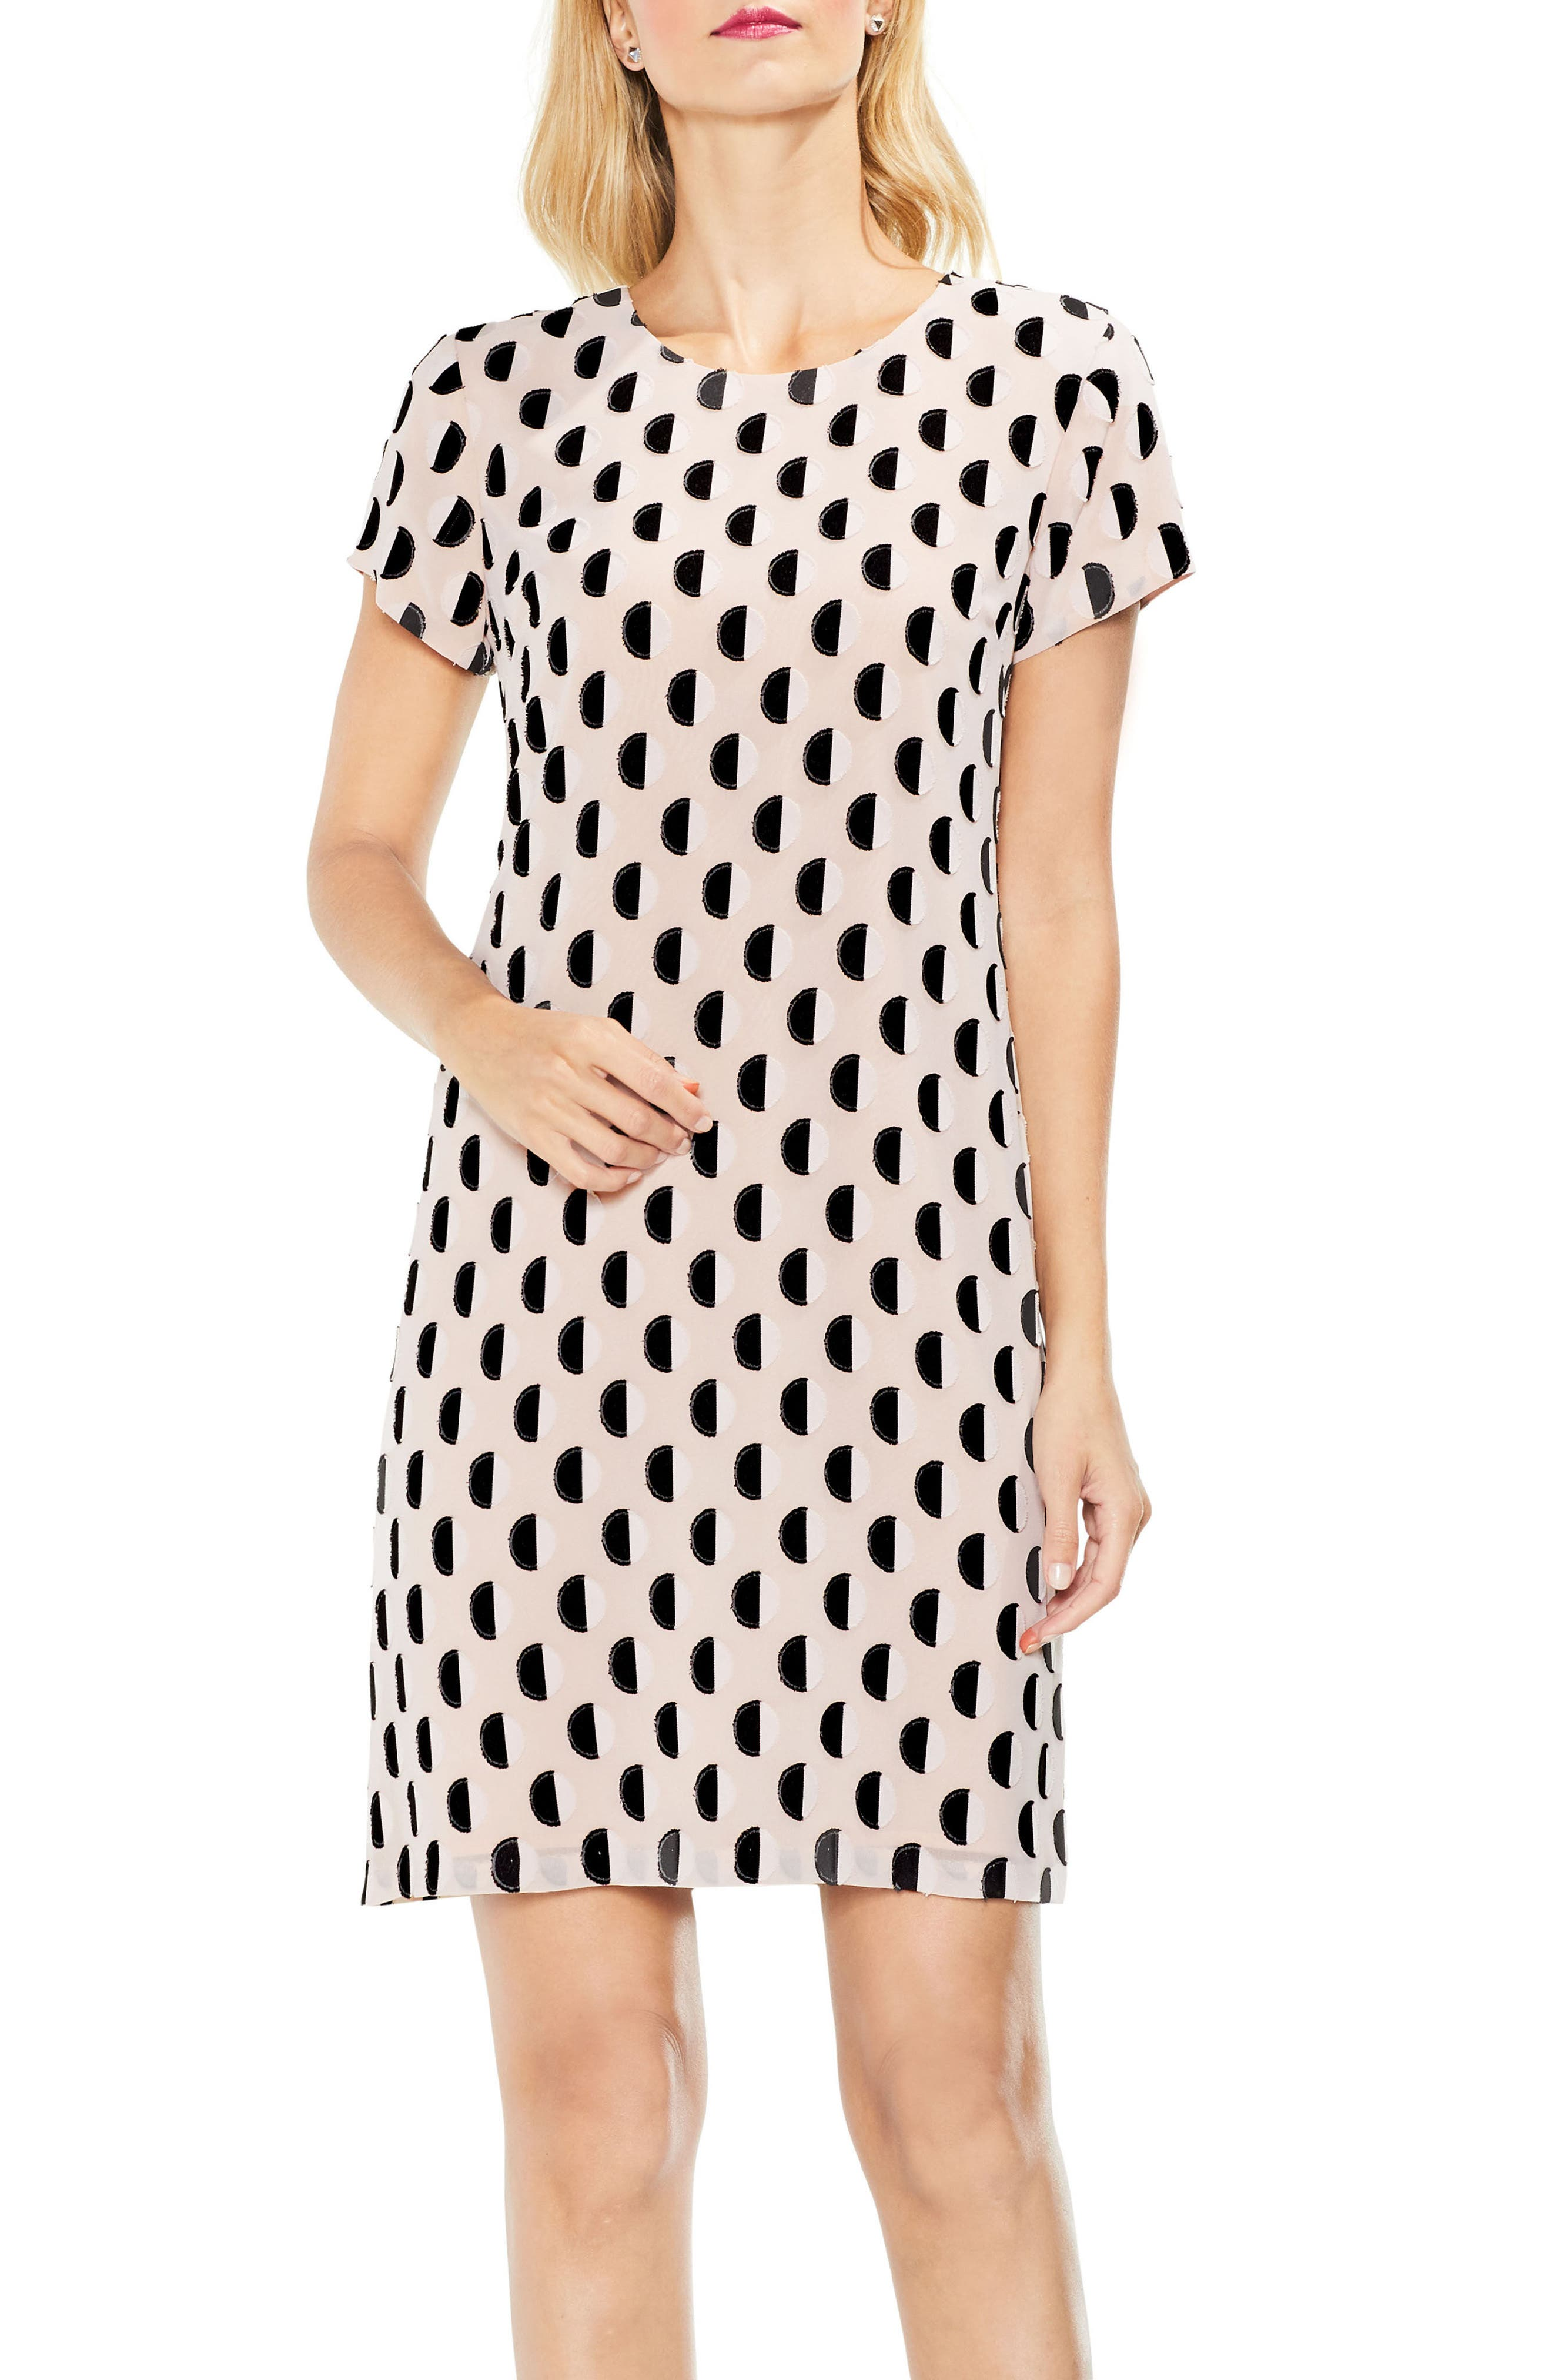 Alternate Image 1 Selected - Vince Camuto Graphic Clip Dot Shift Dress